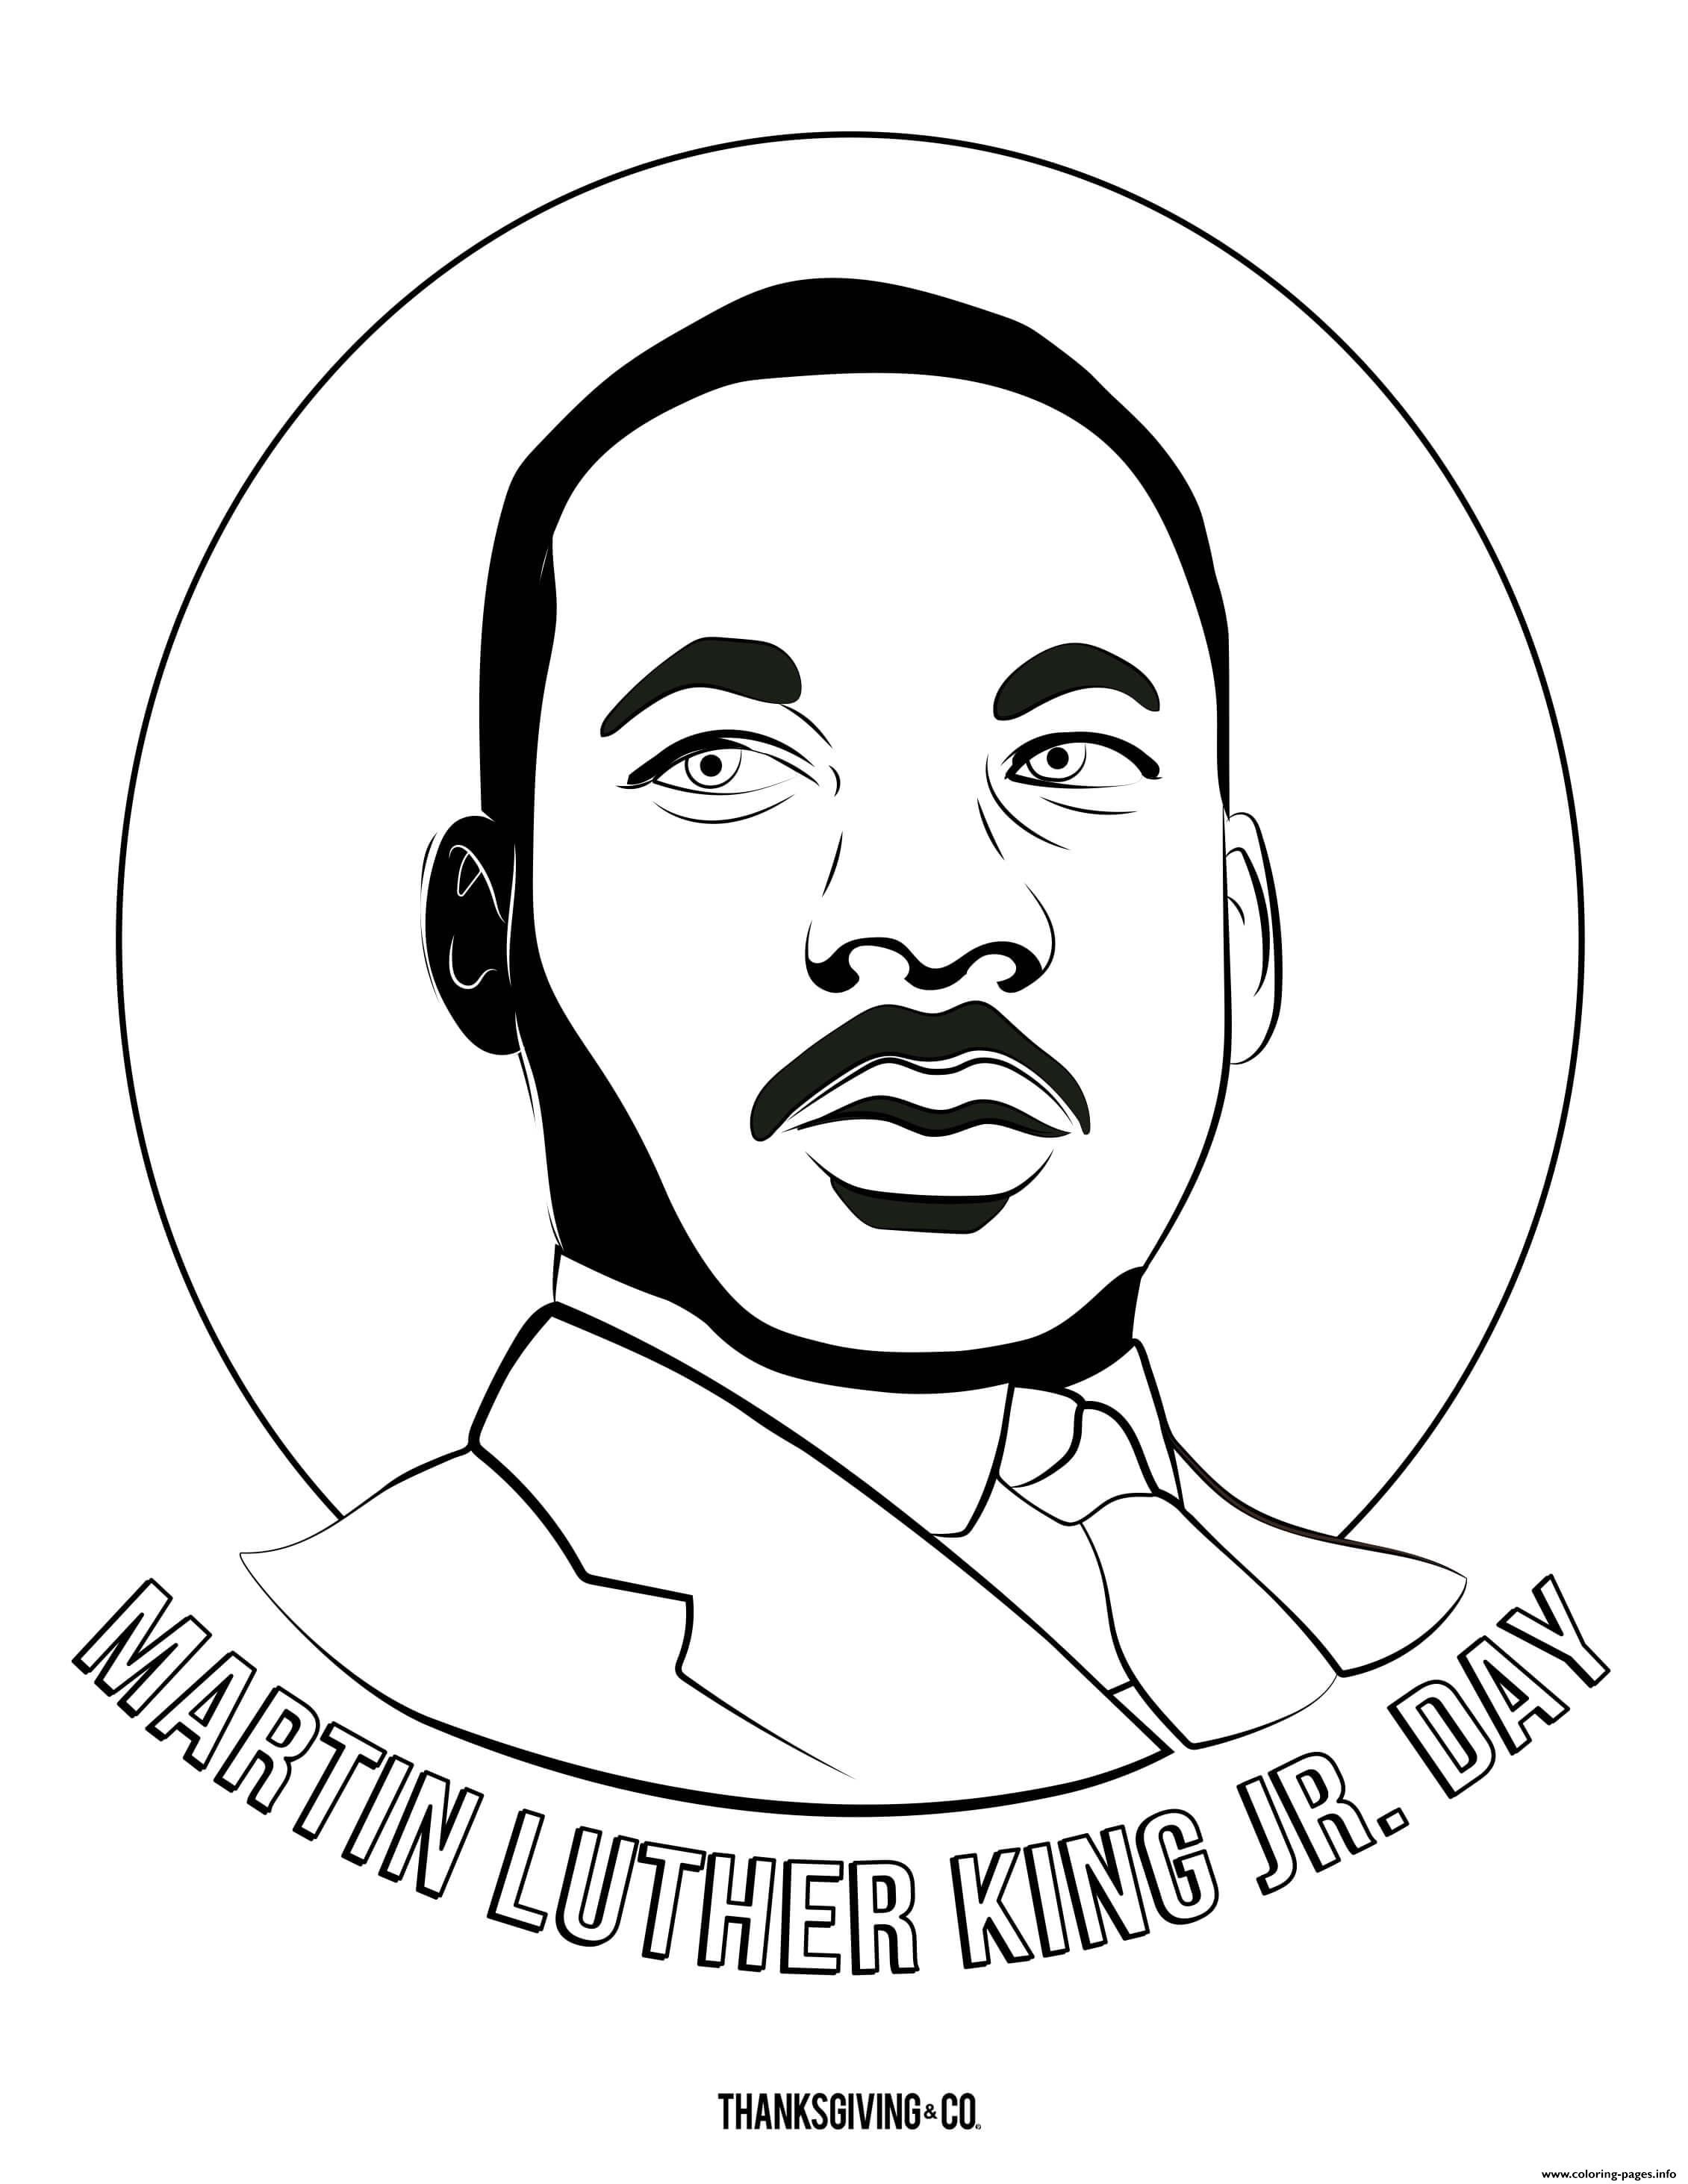 MLK Martin Luther King Jr Day coloring pages